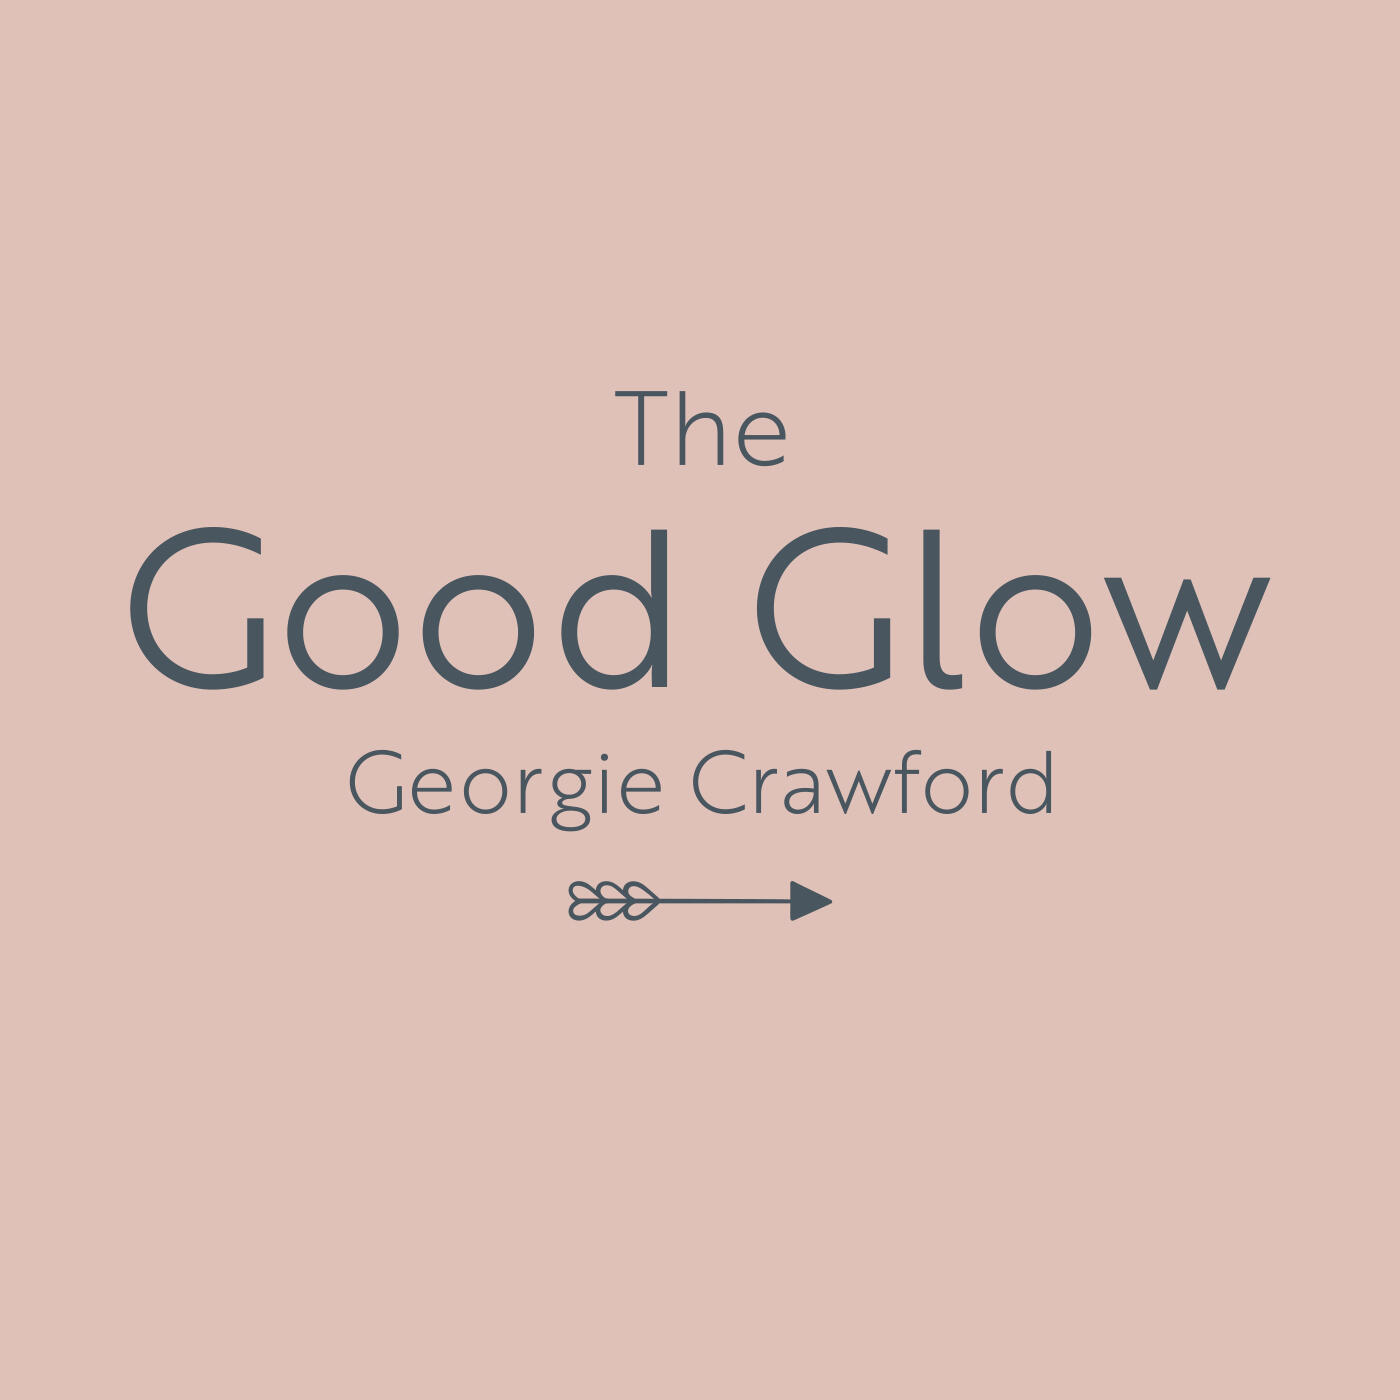 6: The Good Glow with Síle Seoige